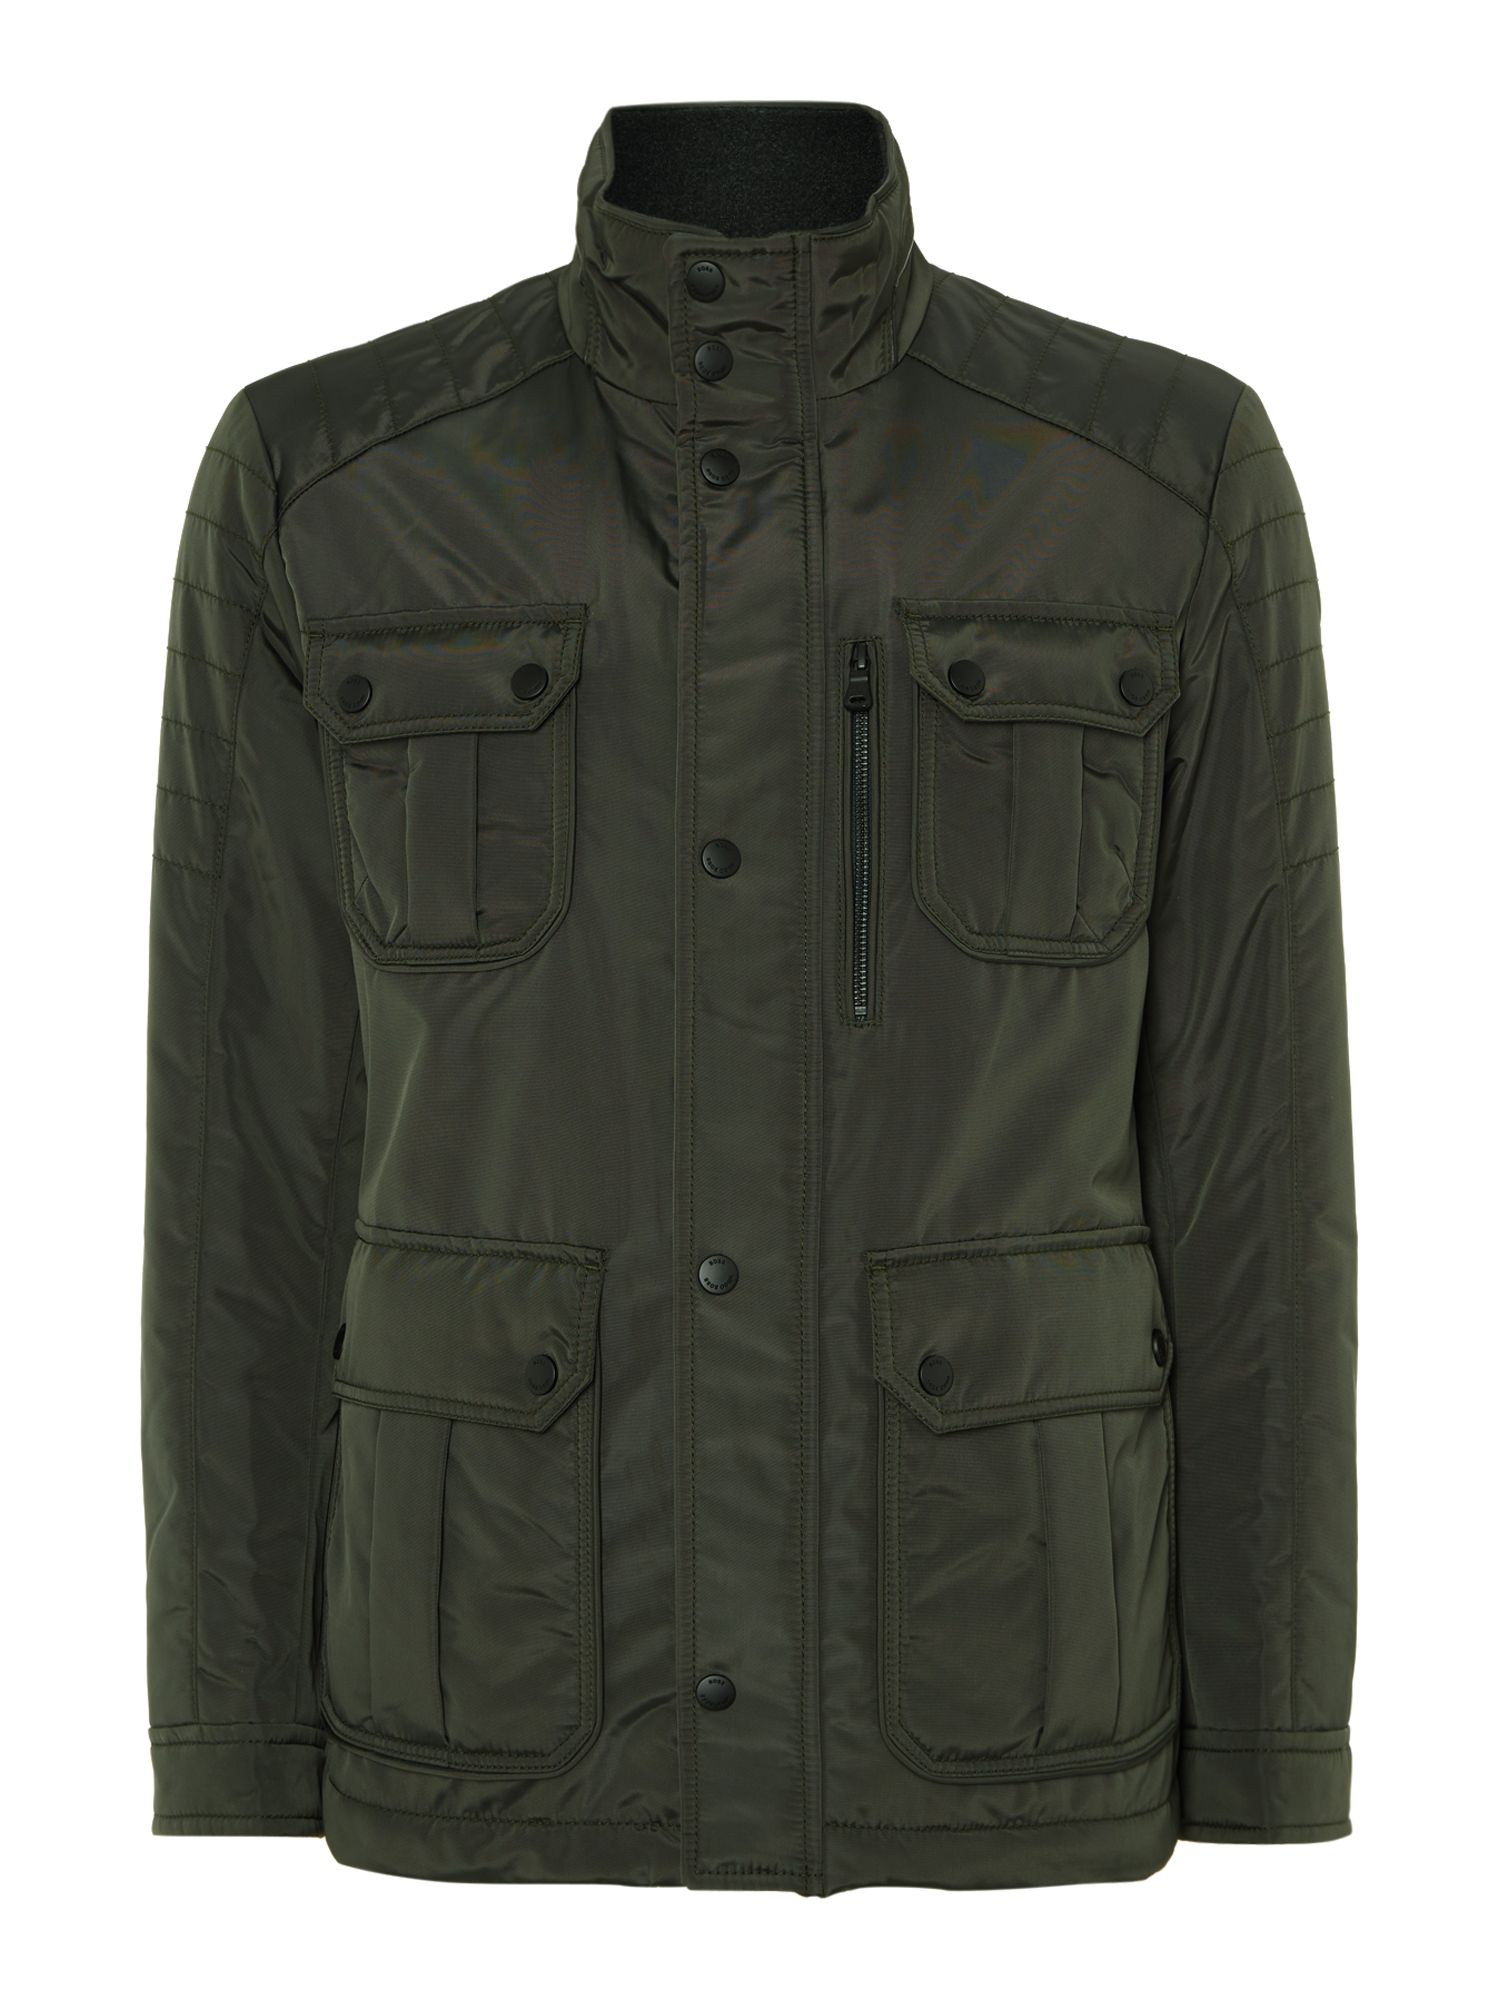 Mens Hugo Boss 4 pocket field jacket Khaki